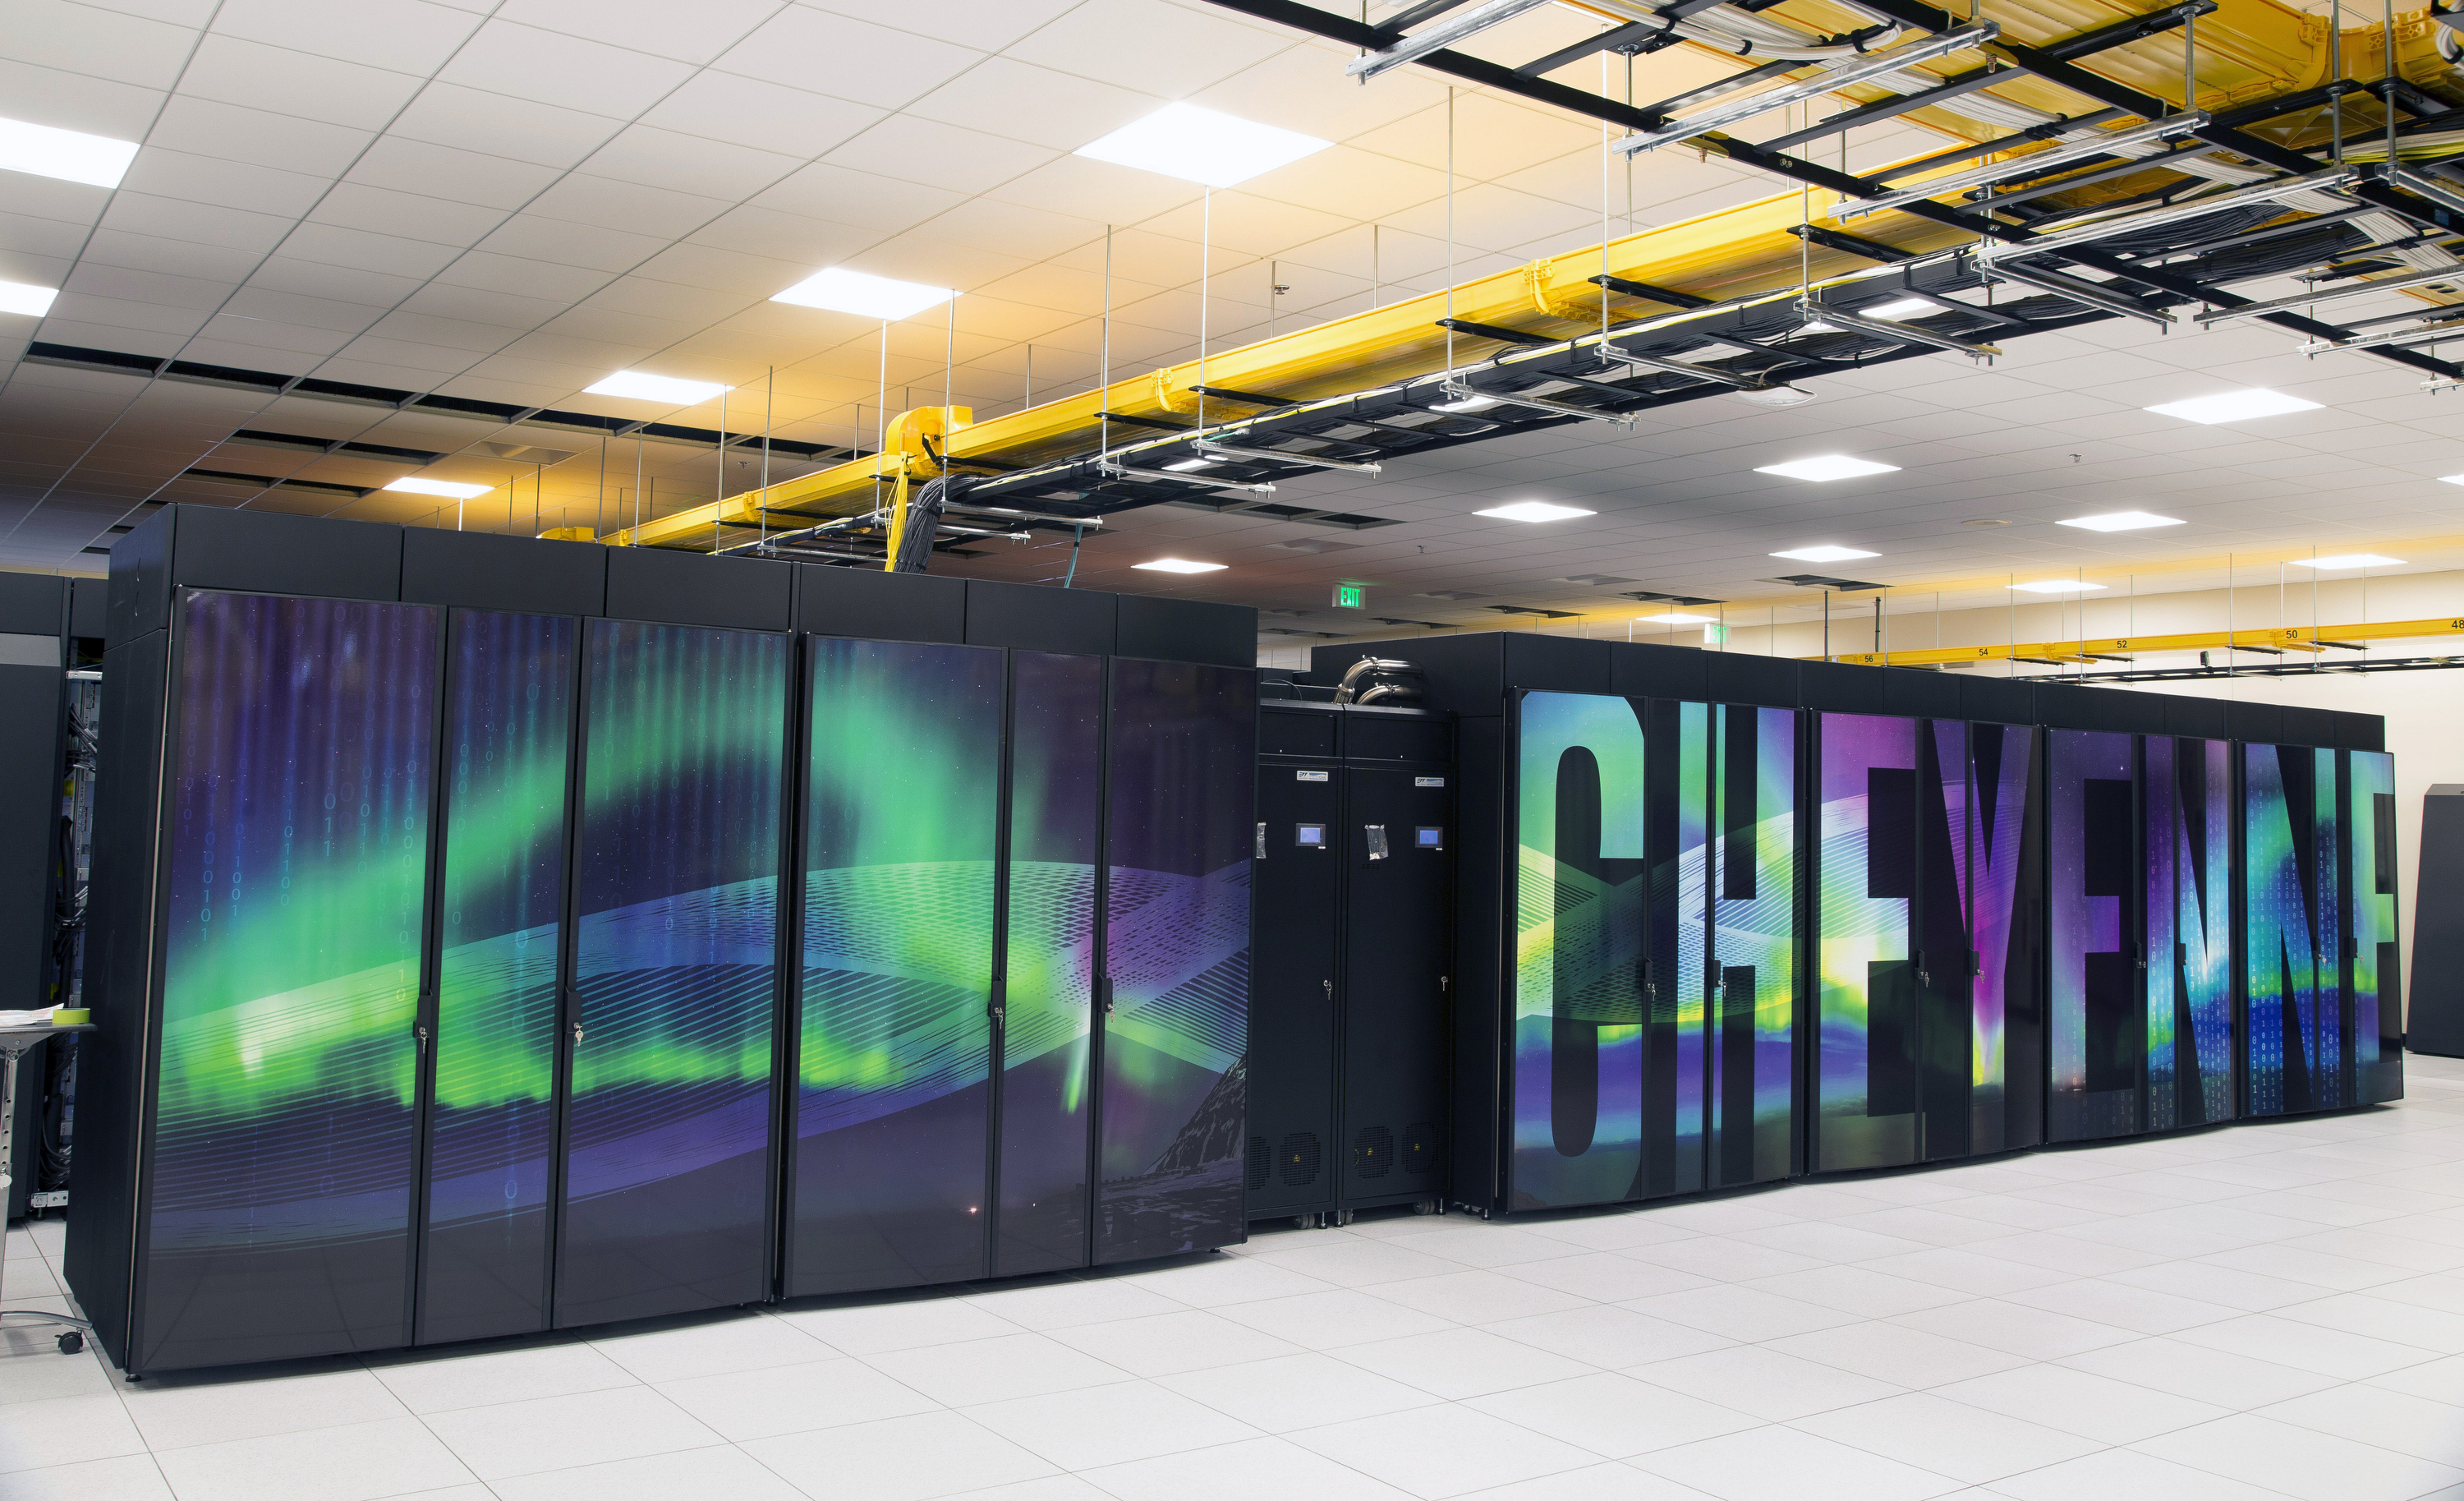 Climate Supercomputer This Oct. 26, 2016 photo provided by the University Corporation for Atmospheric Research shows the new supercomputer named Cheyenne at the National Center for Atmospheric Research at the supercomputing center in Cheyenne, Wyo. Wyoming officials including Gov. Matt Mead say they support the NCAR-Wyoming Supercomputing Center even as they describe themselves as climate skeptics. Scientists nationwide are nonetheless concerned that President Donald Trump, who has called climate change a hoax, might not take climate change research seriously. (Carlye Calvin/ University Corporation for Atmospheric Research via AP)